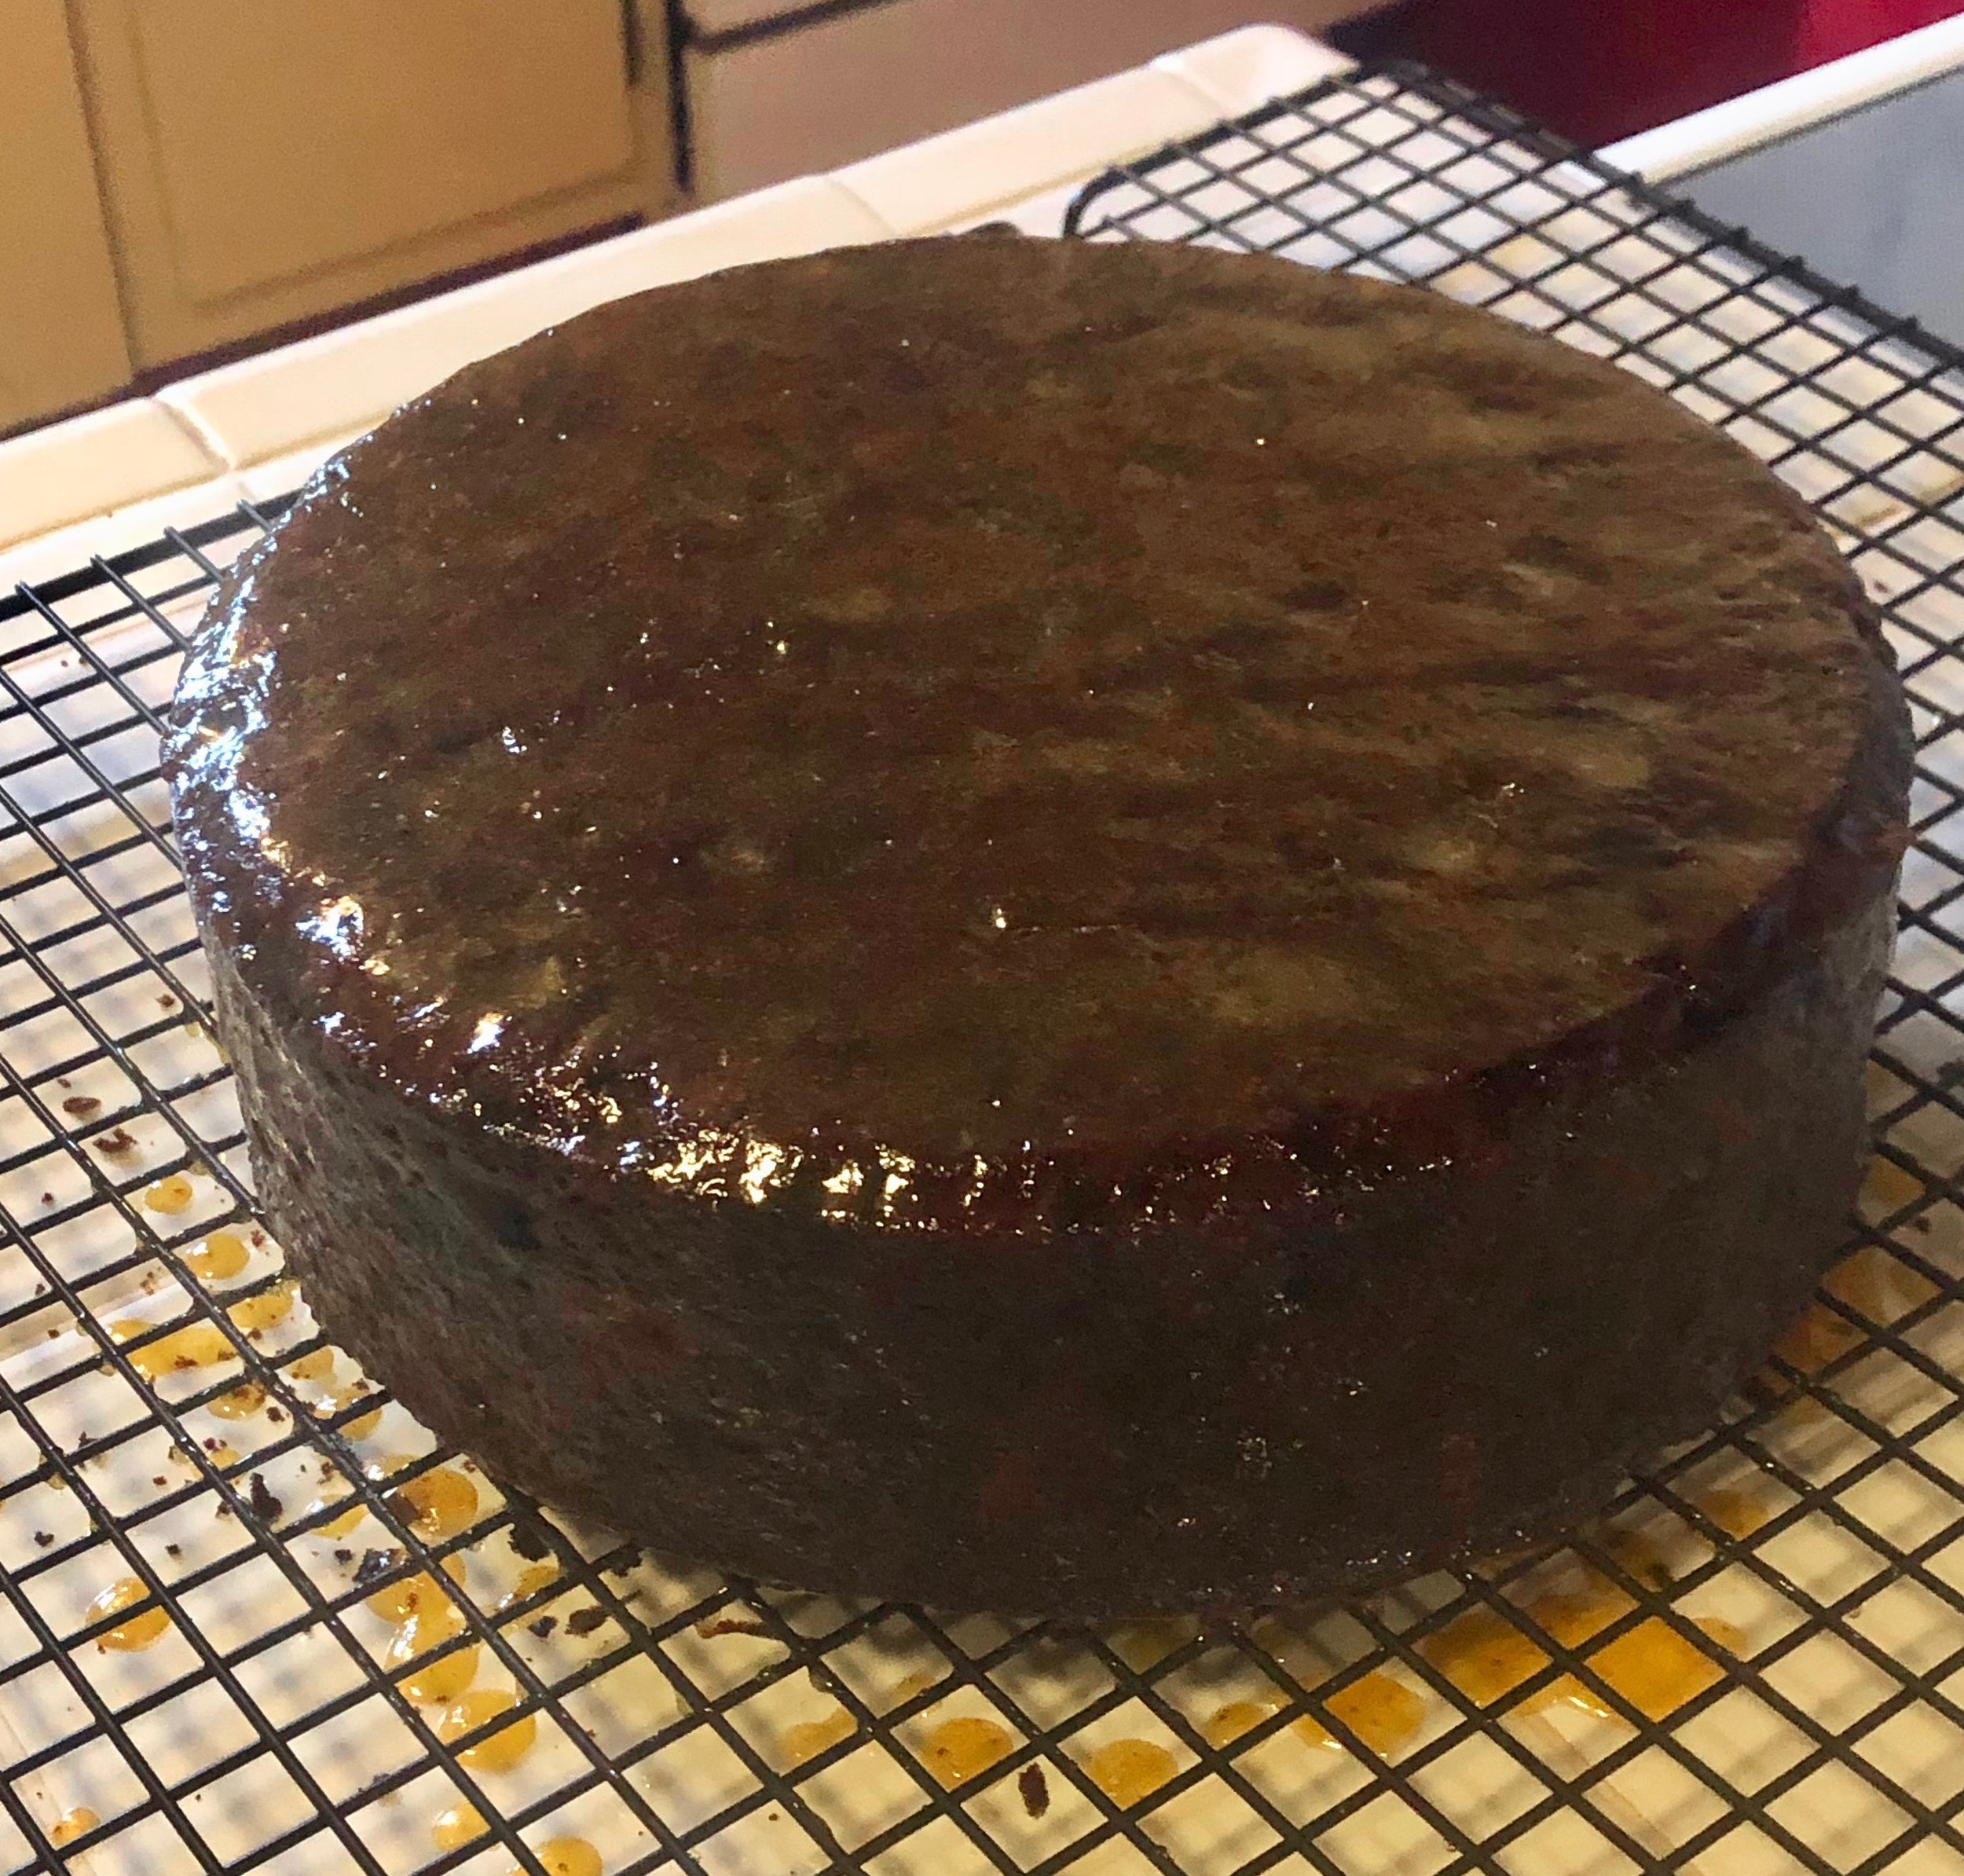 After the glaze has set, this luscious fruitcake is ready to go!